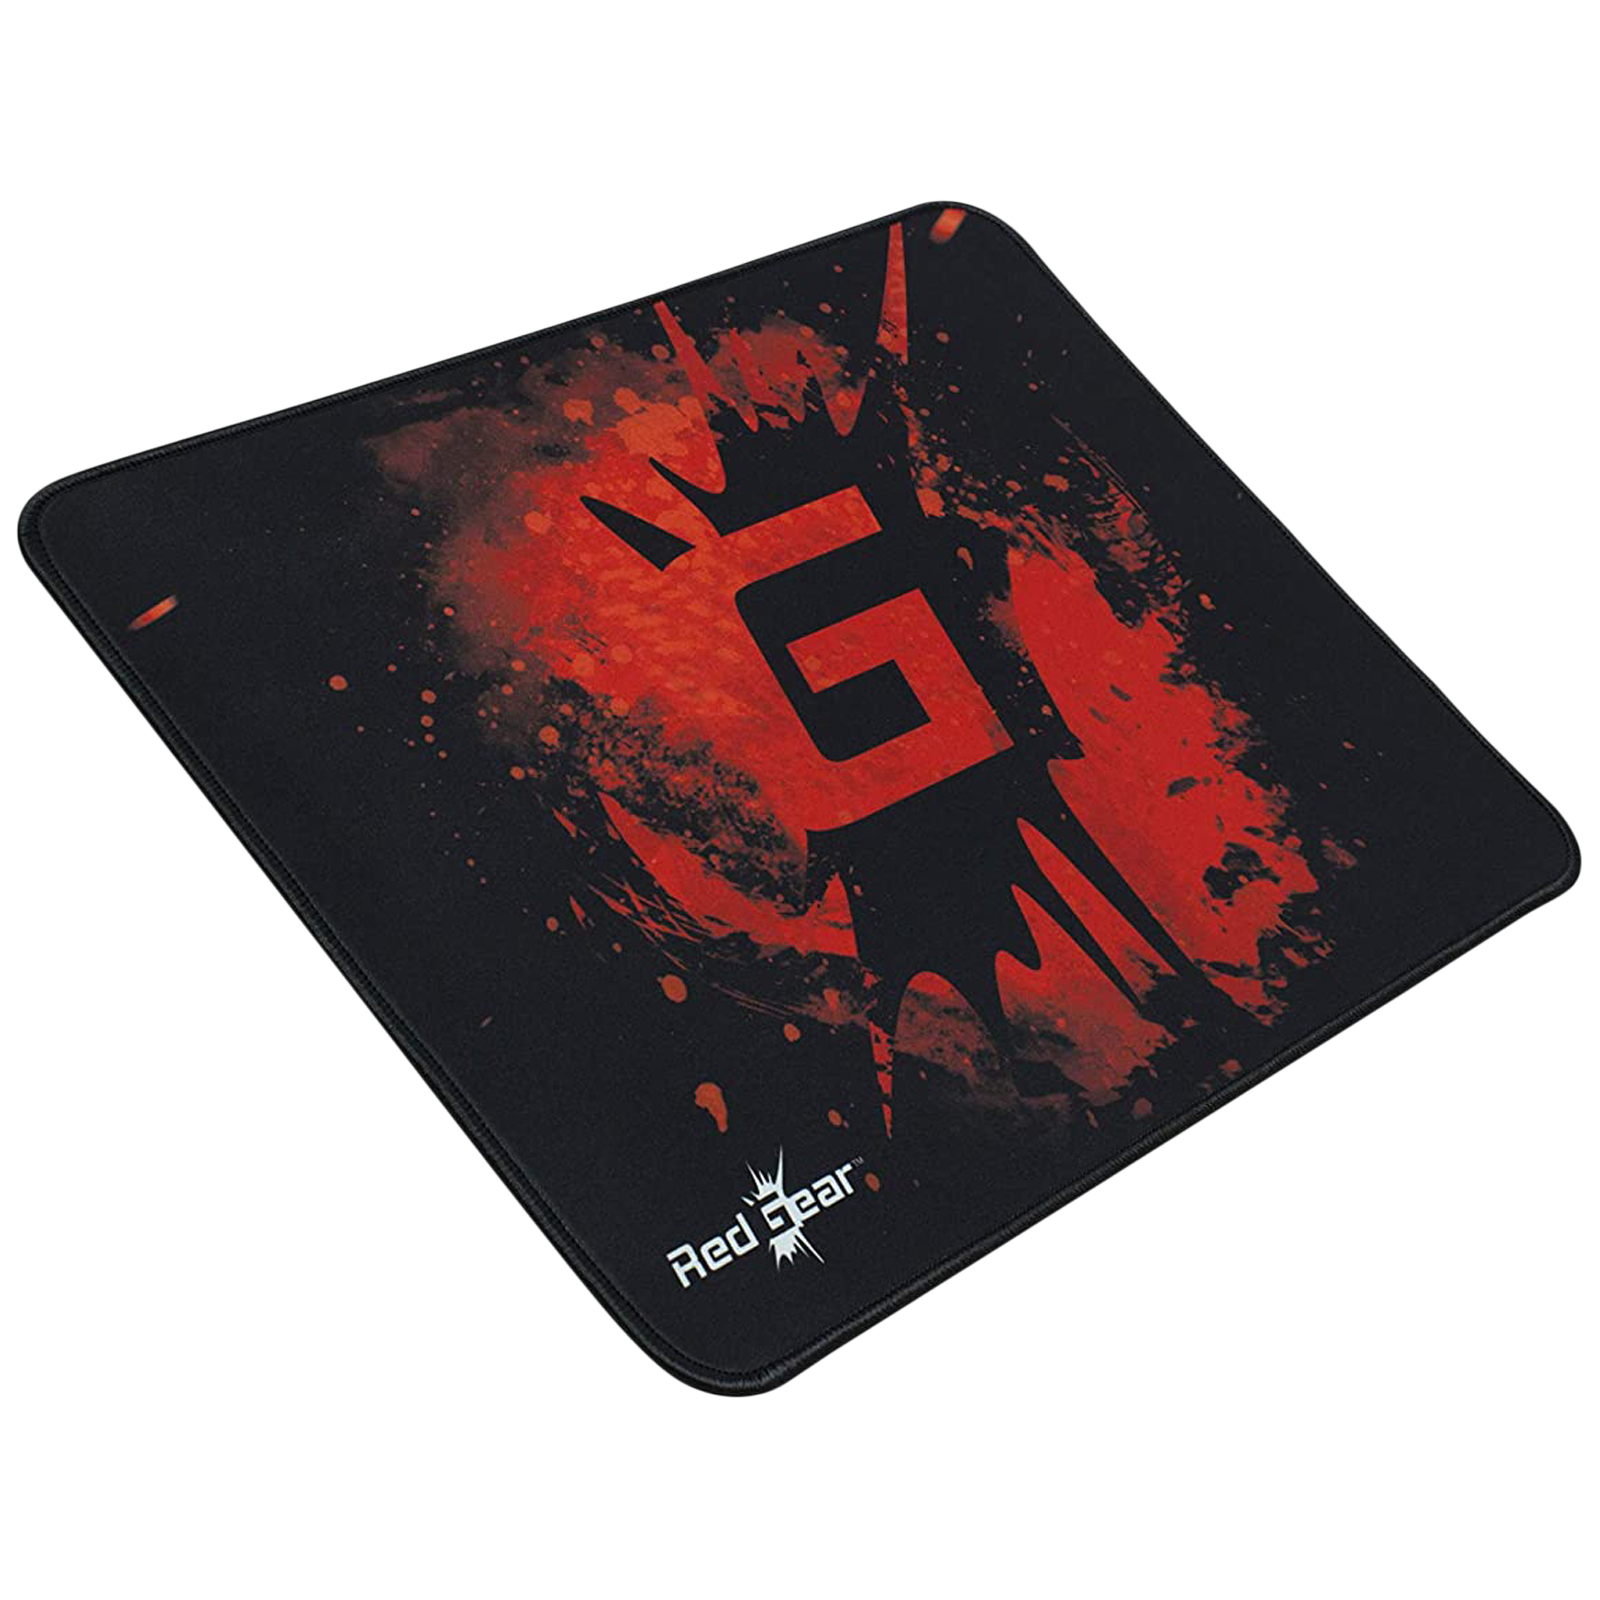 Redgear MP44 Gaming Mousepad(Smooth And Fast, 8904130845659, Black)_1